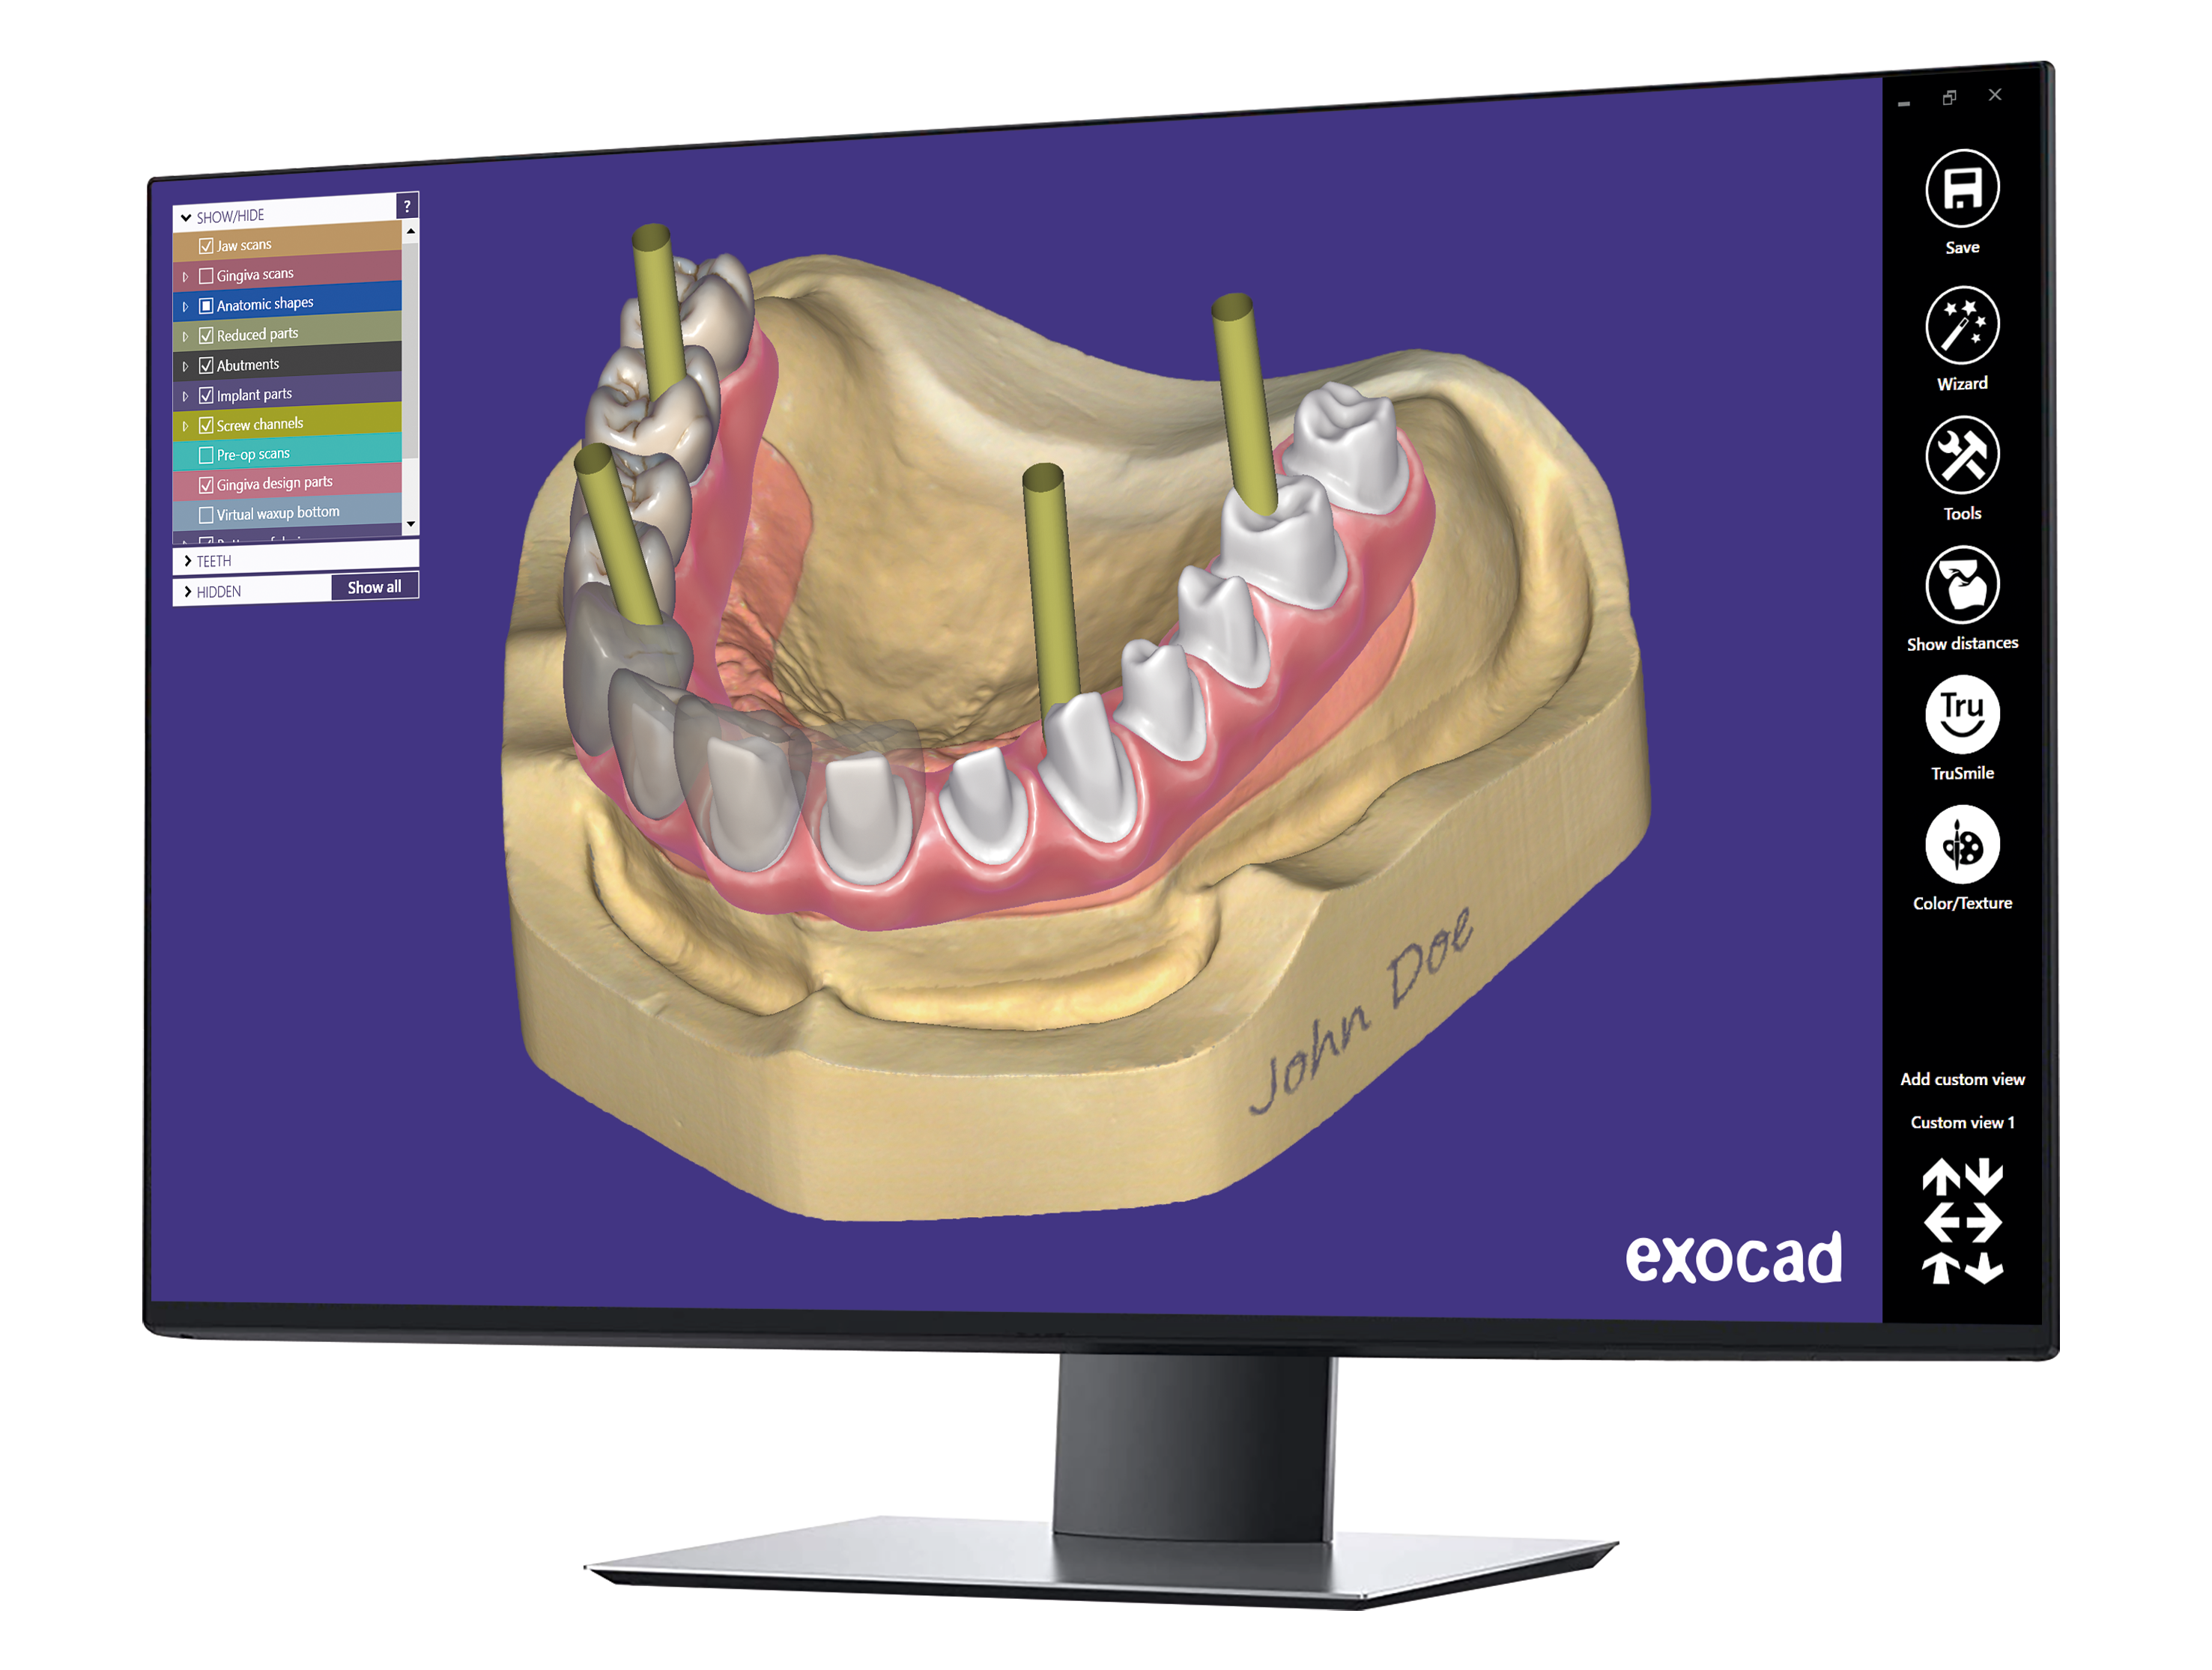 exocad-DentalCAD-Page-13-Monitor-Implant